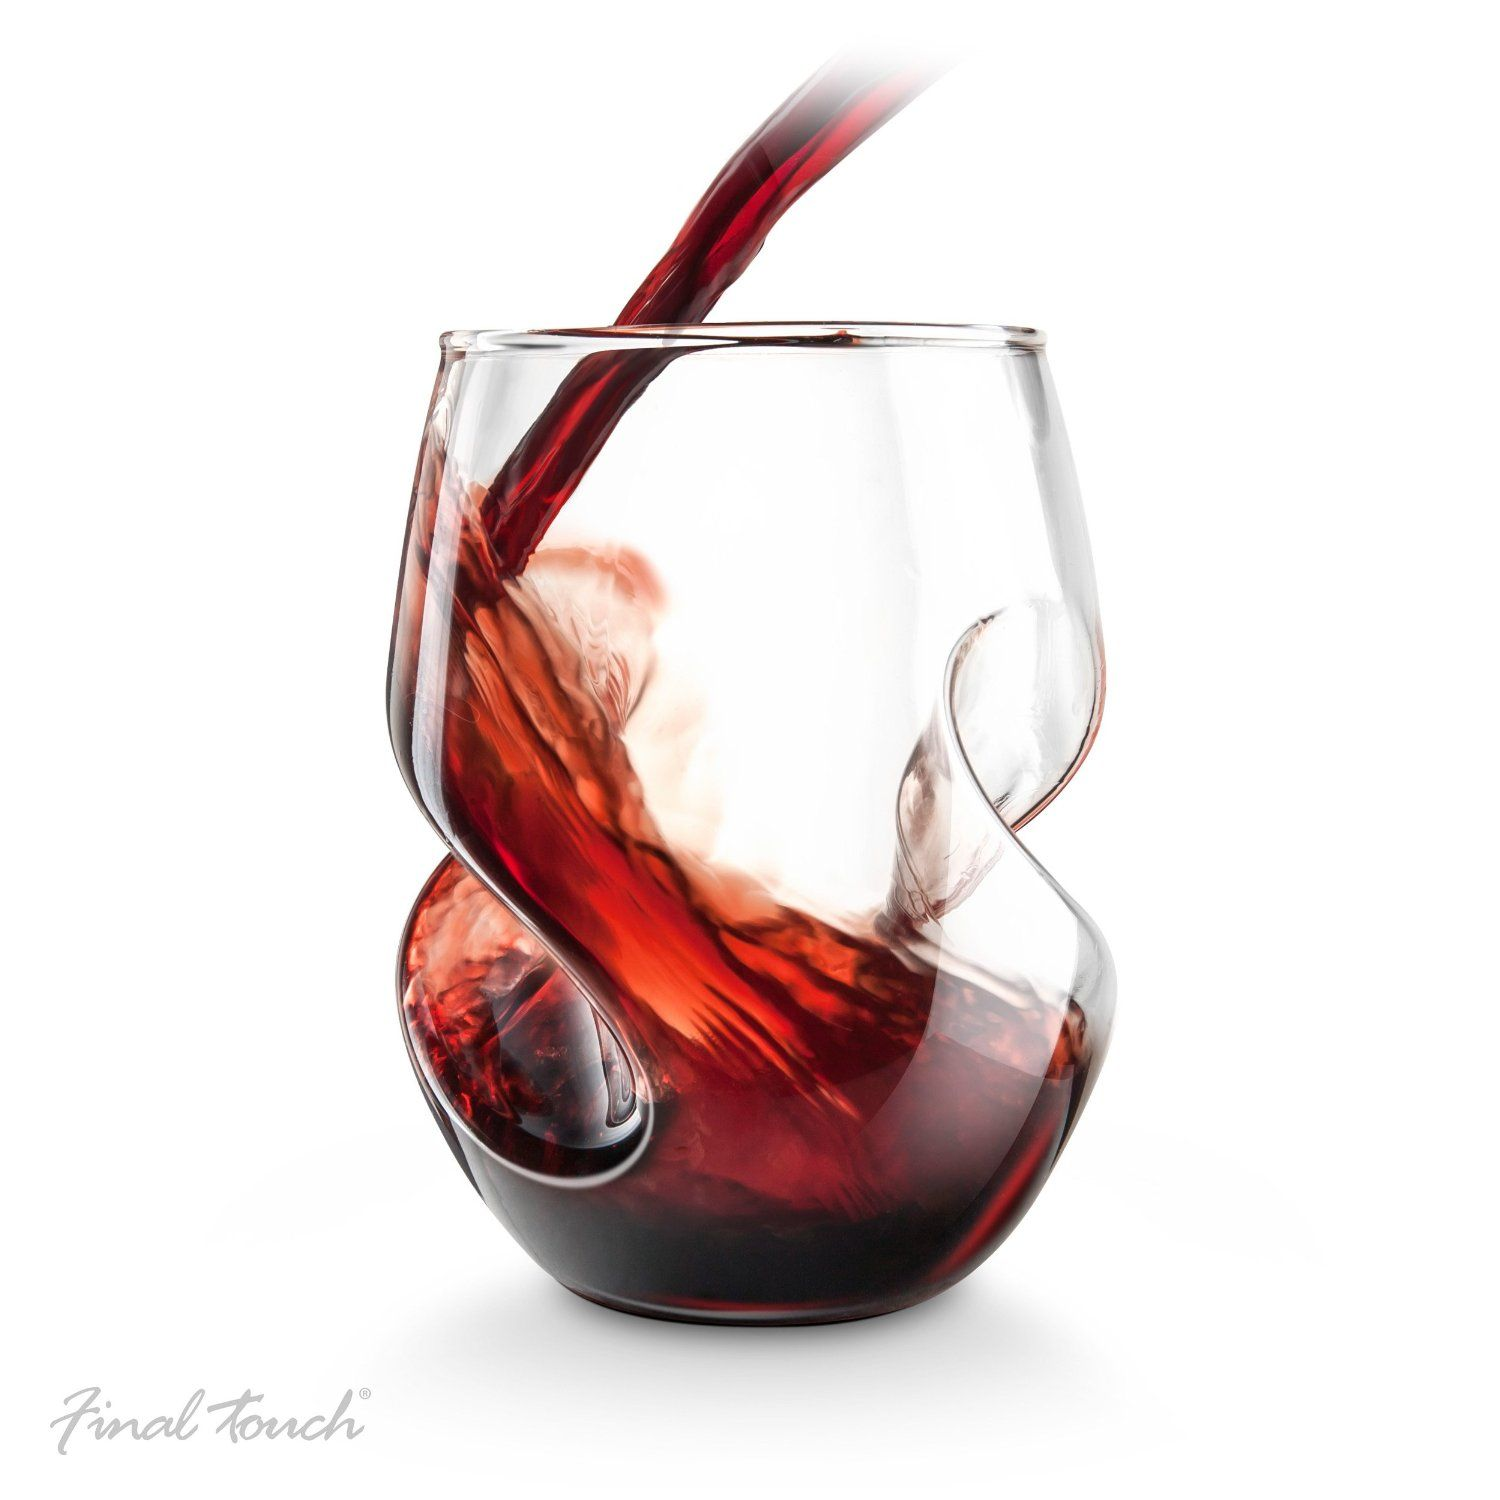 Conundrum Red Wine Glasses Set Of 4 By Final Touch Price 29 95 Capacity 16 Oz 473ml Dim Hand Blown Wine Glasses Red Wine Glasses Wine Glass Set